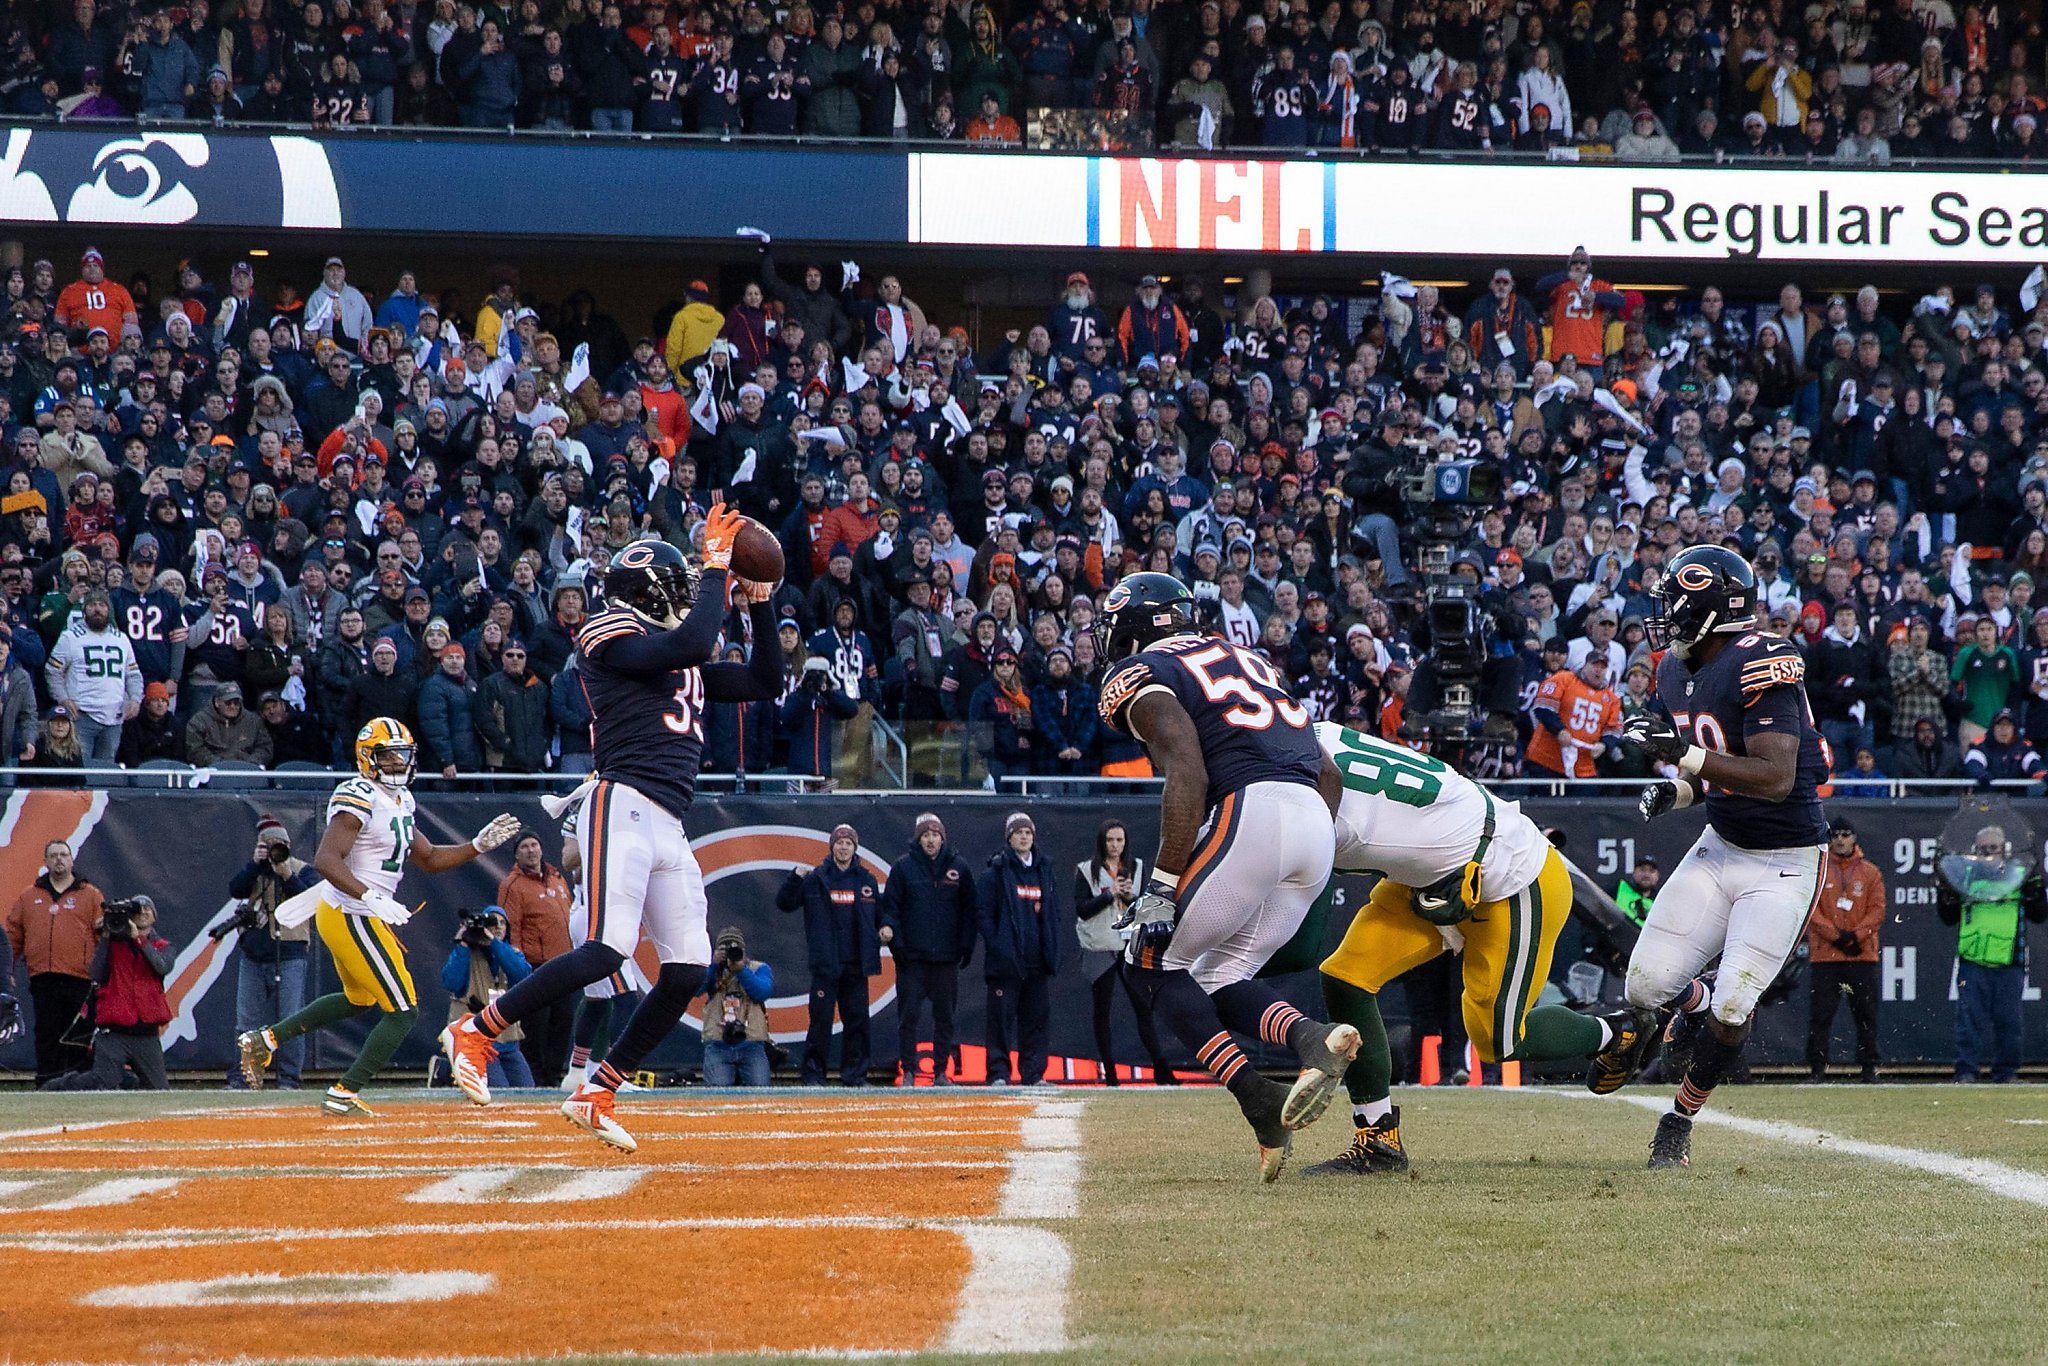 Bears clinch NFC North with victory over Packers - SFGate 8f9a77685